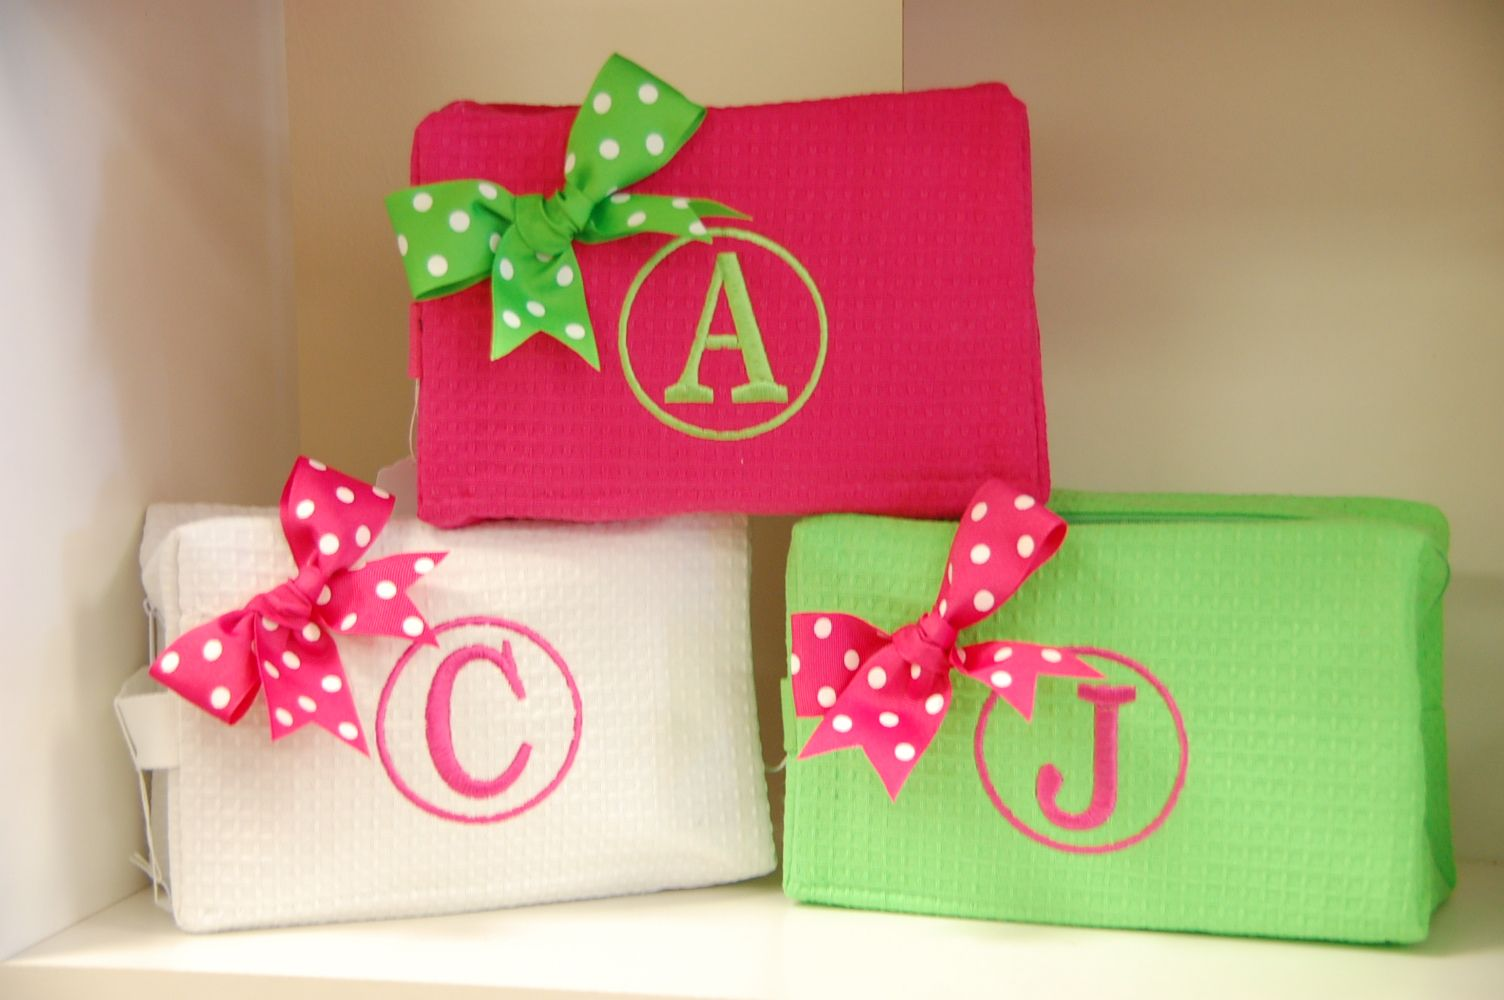 Monogrammed cosmetic cases make great birthday or graduation gifts...perfect for bridesmaids, as well